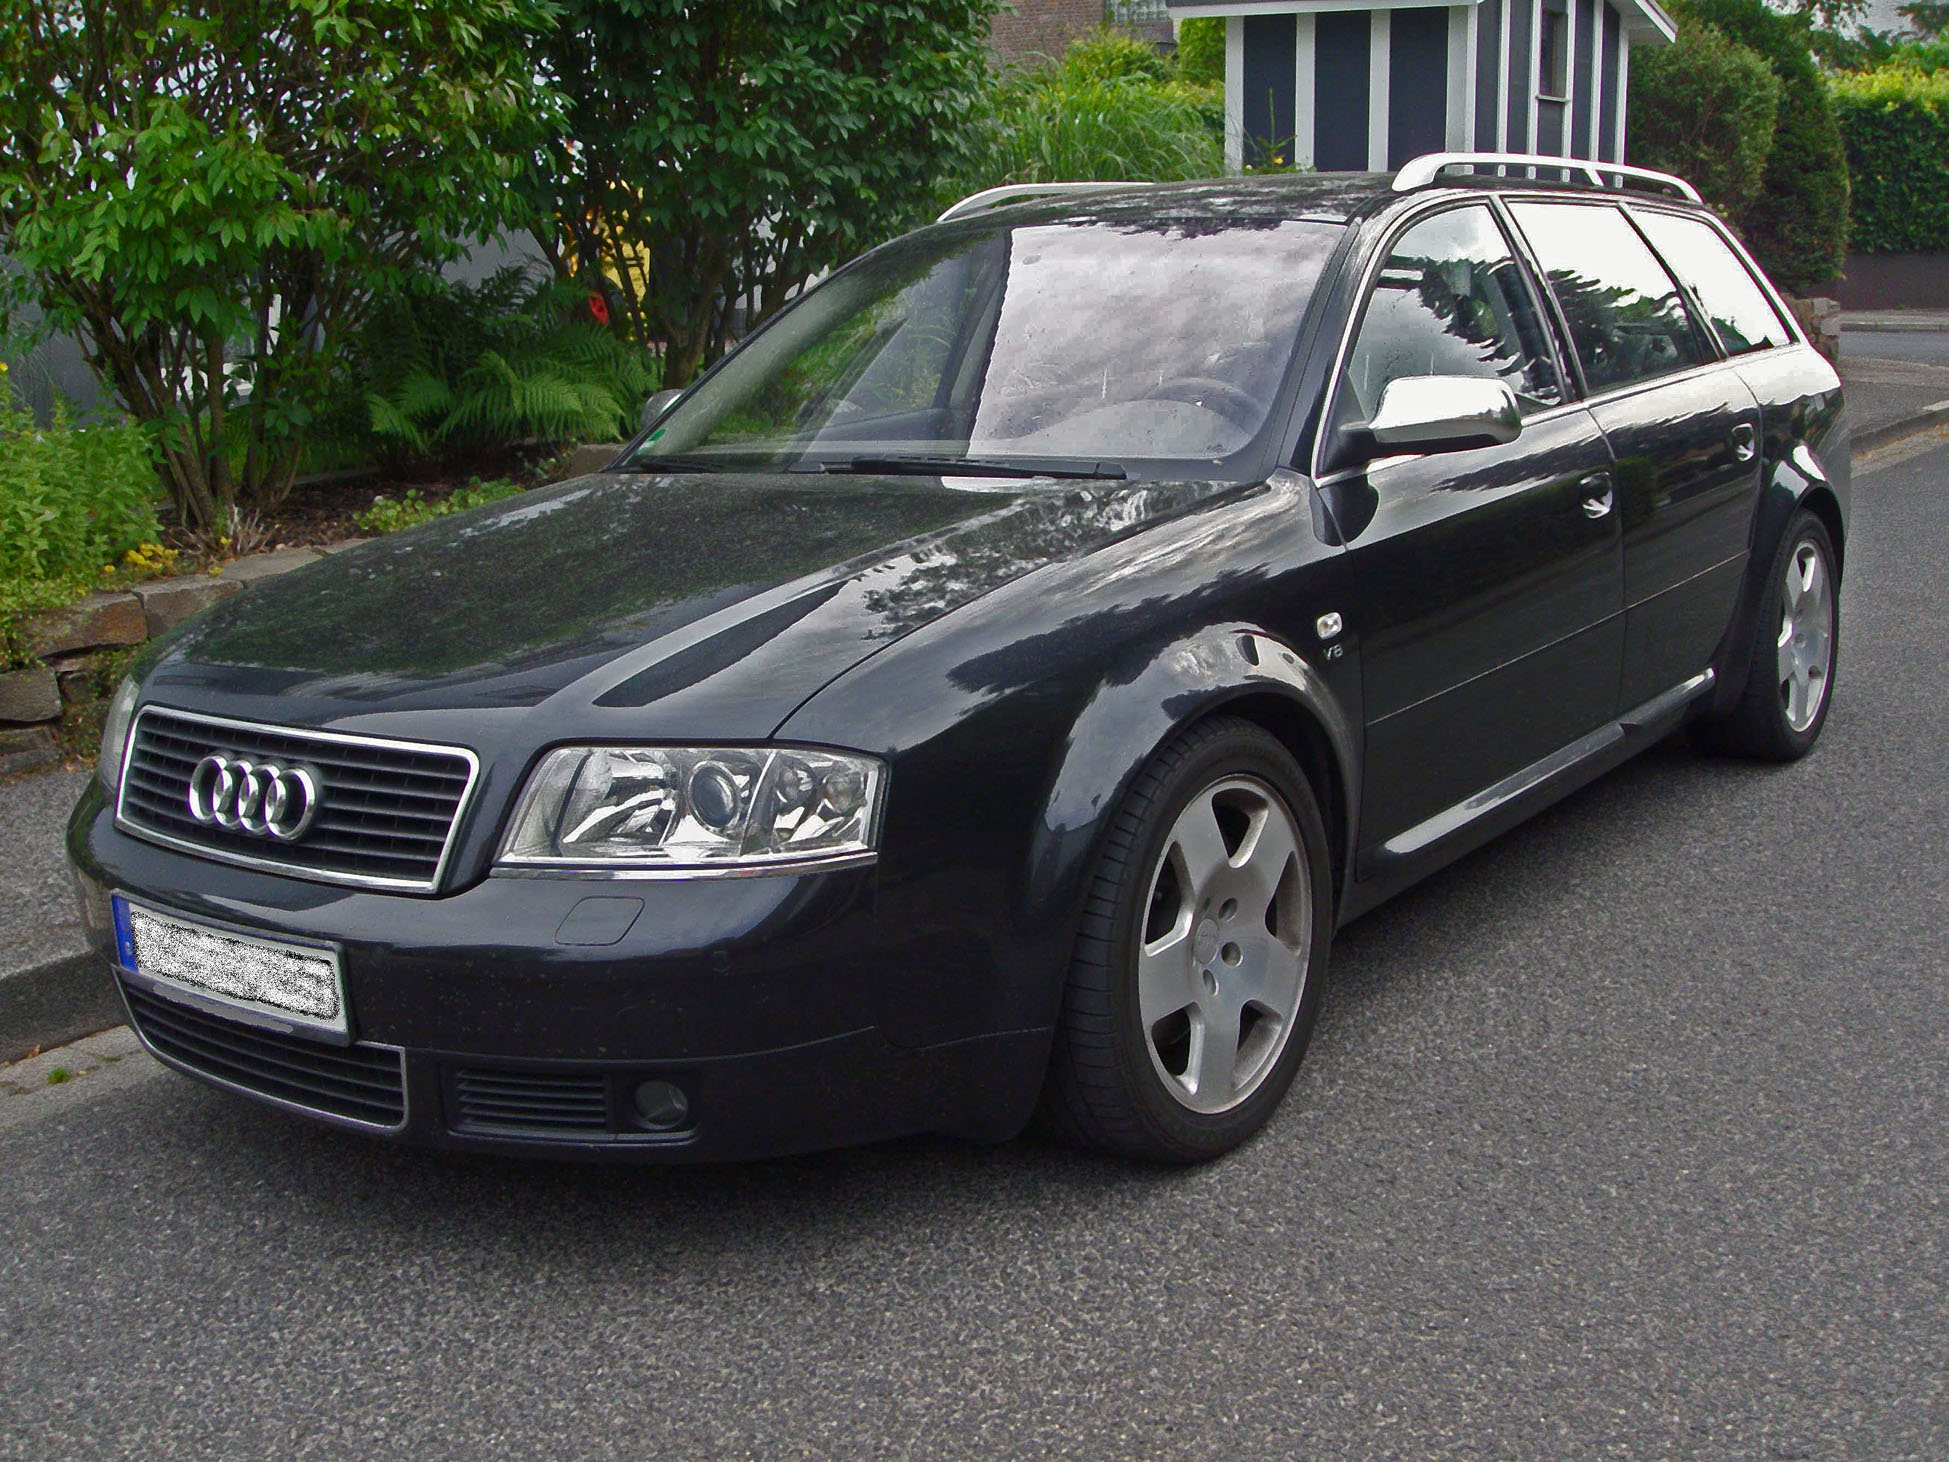 2003 audi a6 4b c5 pictures information and specs. Black Bedroom Furniture Sets. Home Design Ideas